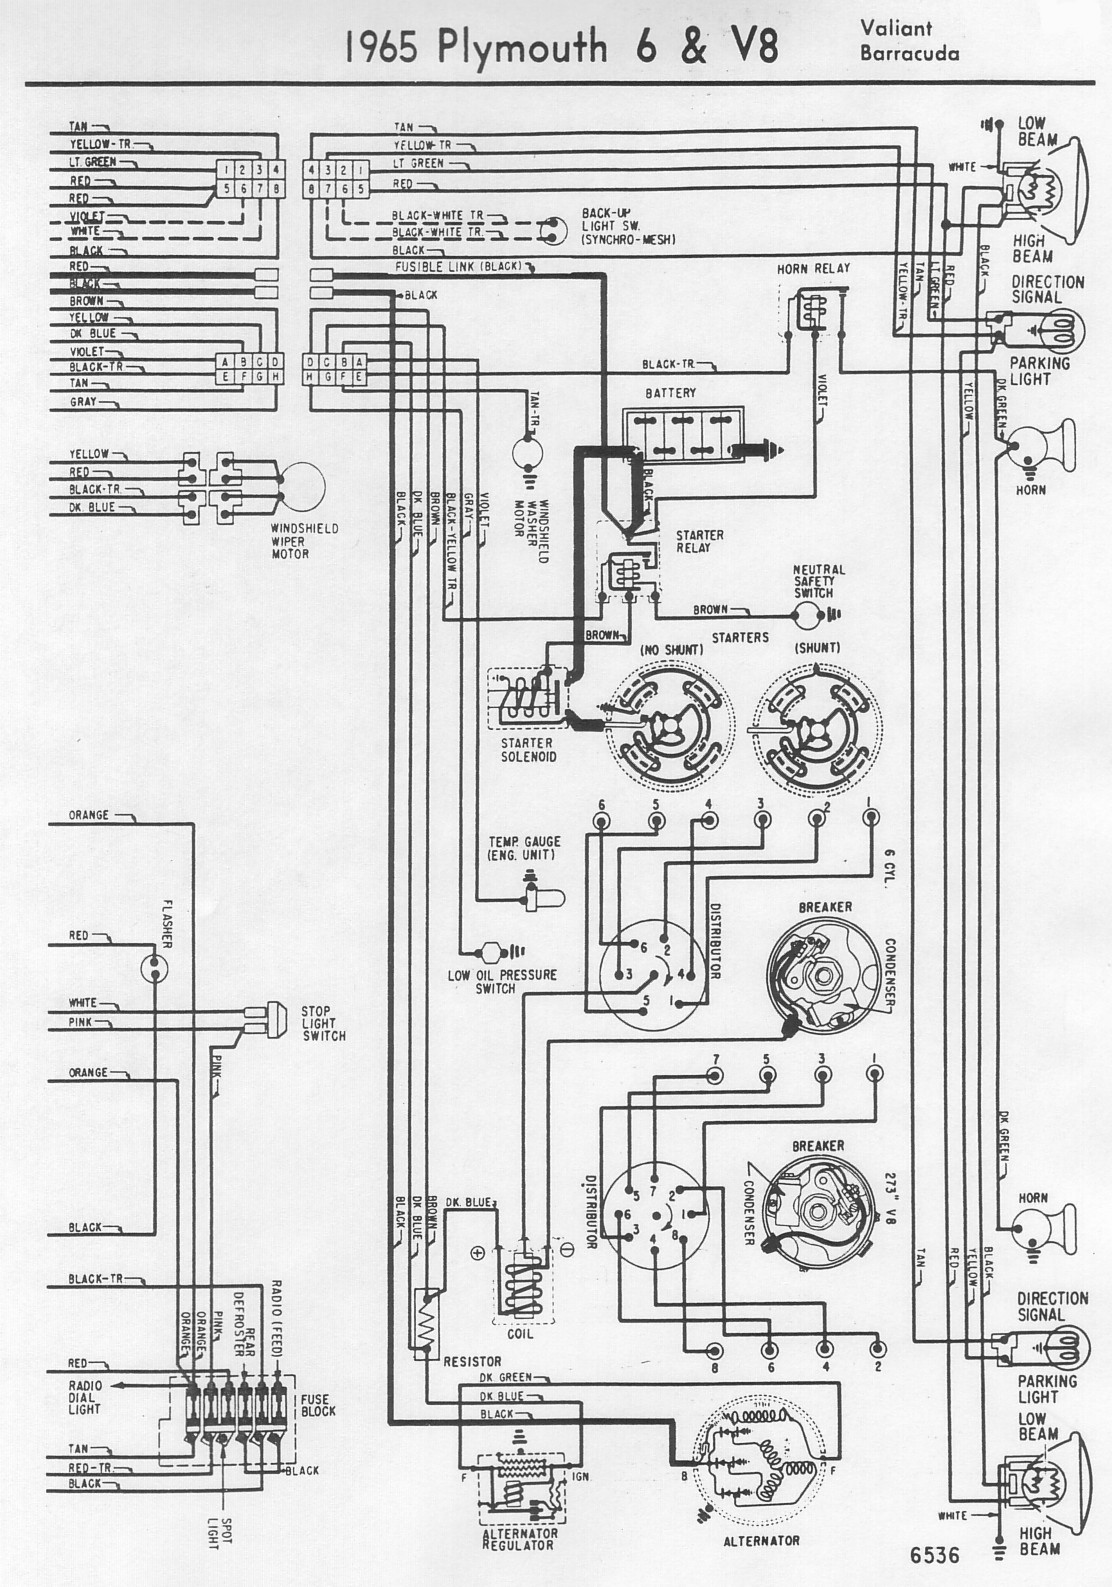 1966 plymouth valiant wiring diagram wiring diagram1972 plymouth cuda wiring diagram wiring diagram blog1973 plymouth barracuda wiring diagram wiring diagrams 1971 cuda